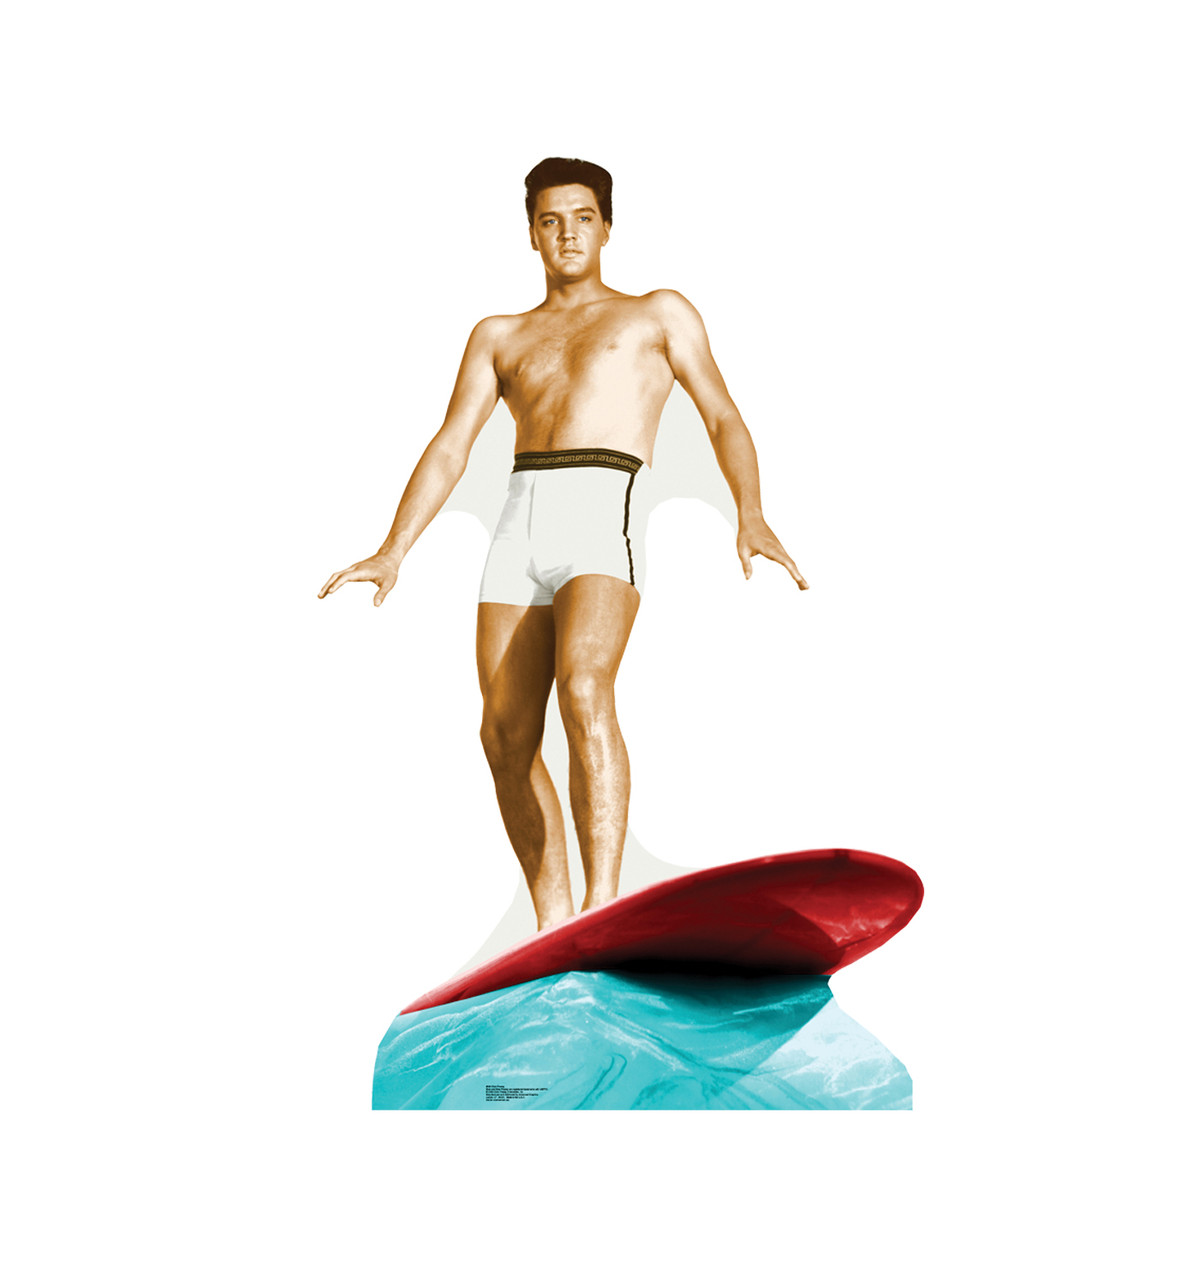 Elvis Presley Surfing - Talking - Cardboard Cutout 846T